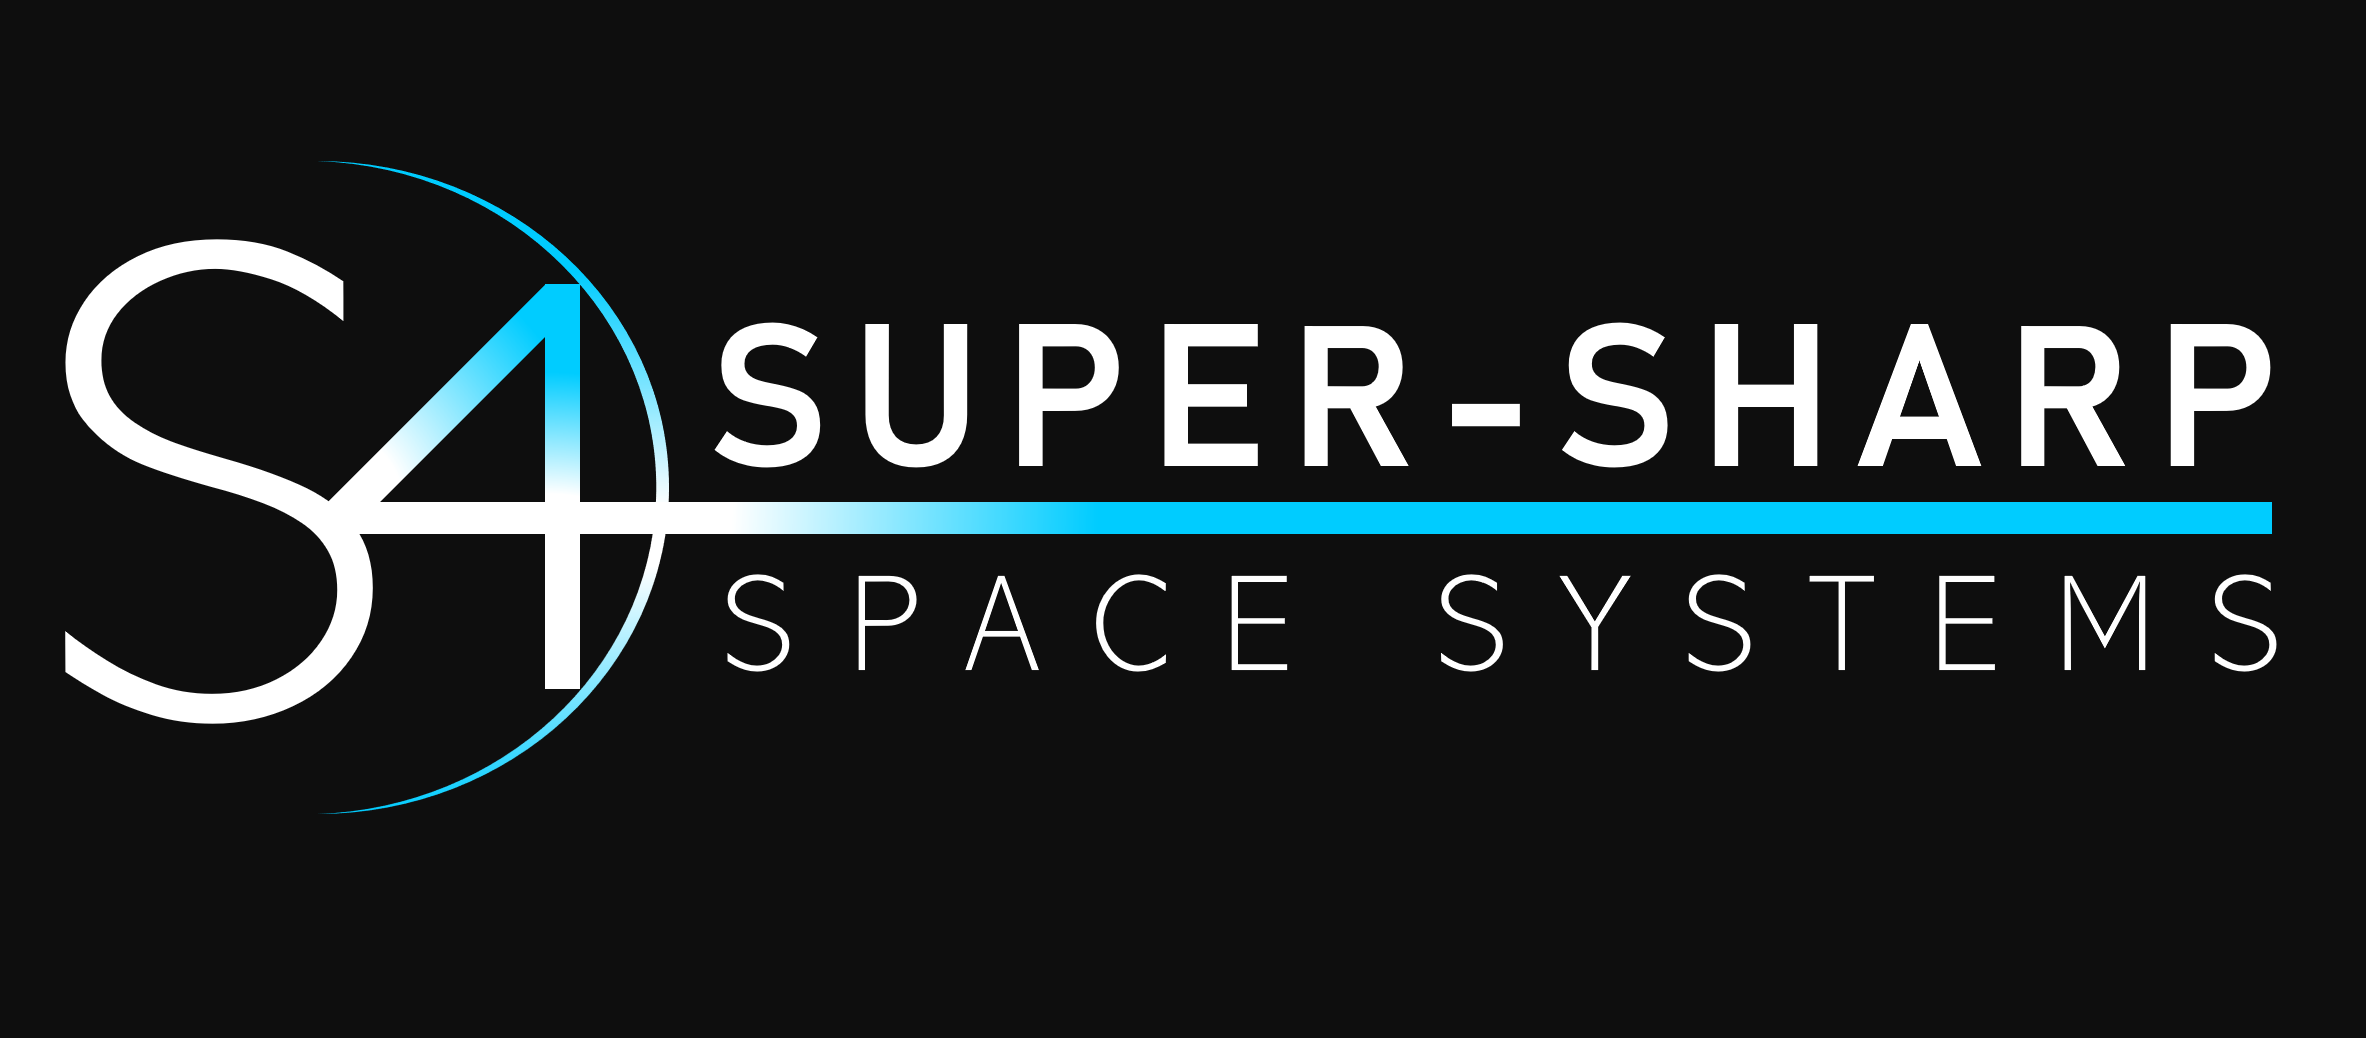 Super-Sharp Space Systems logo